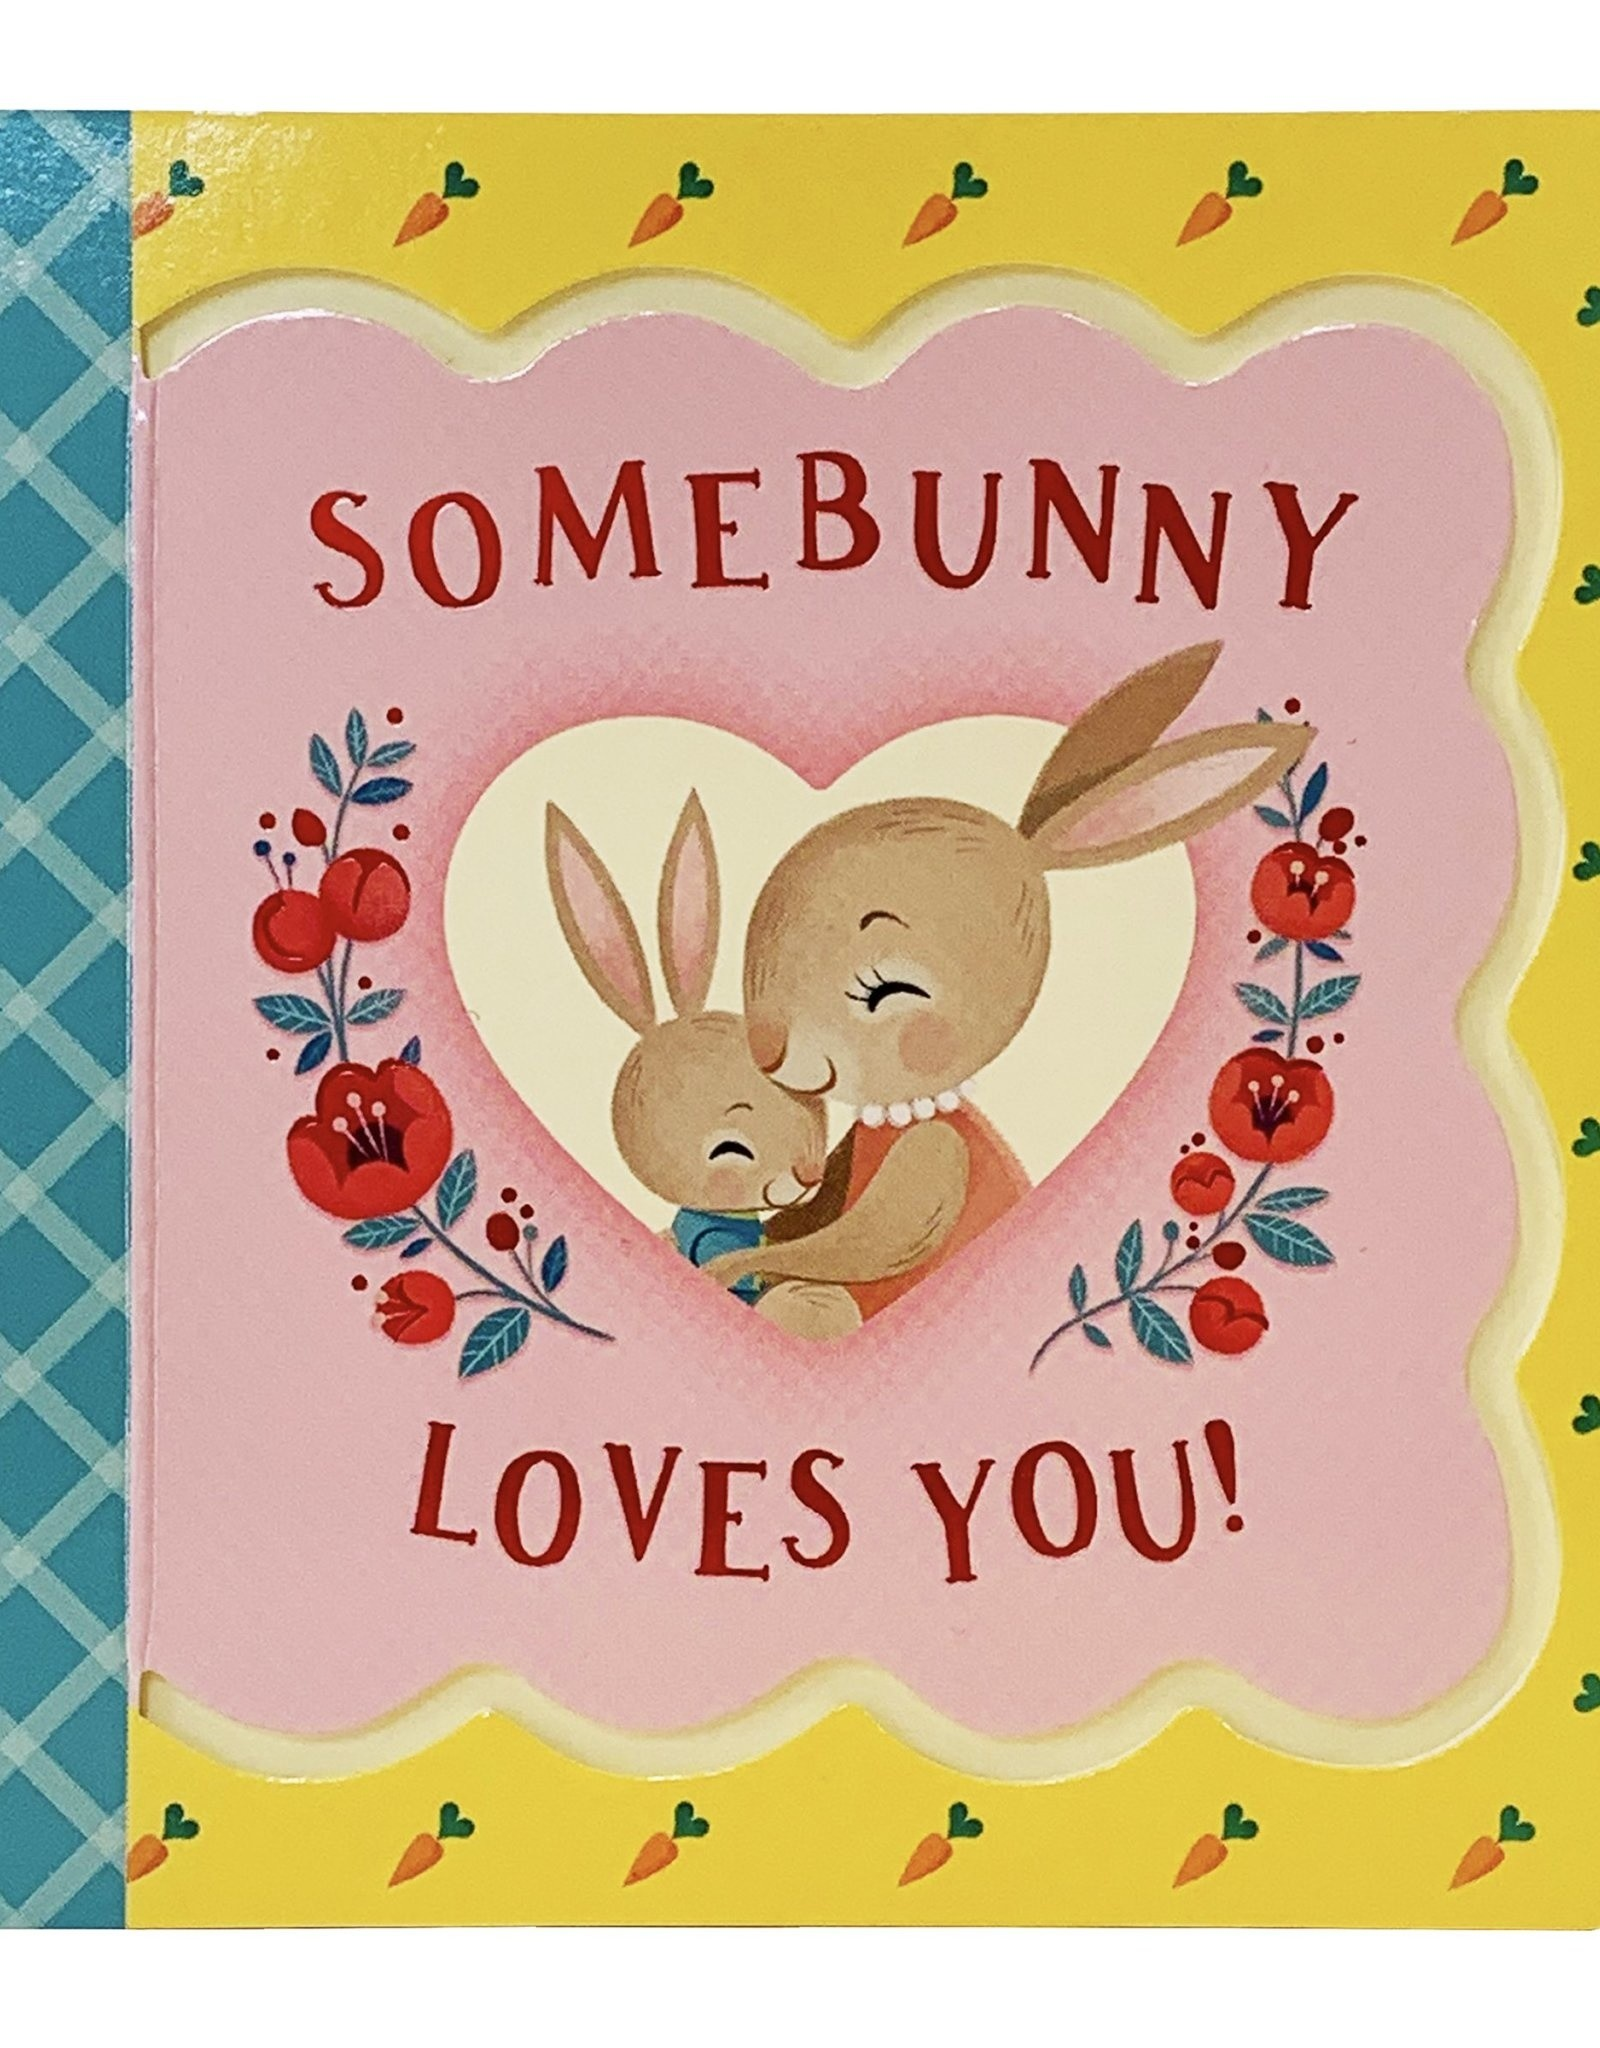 Some Bunny Loves You! board book